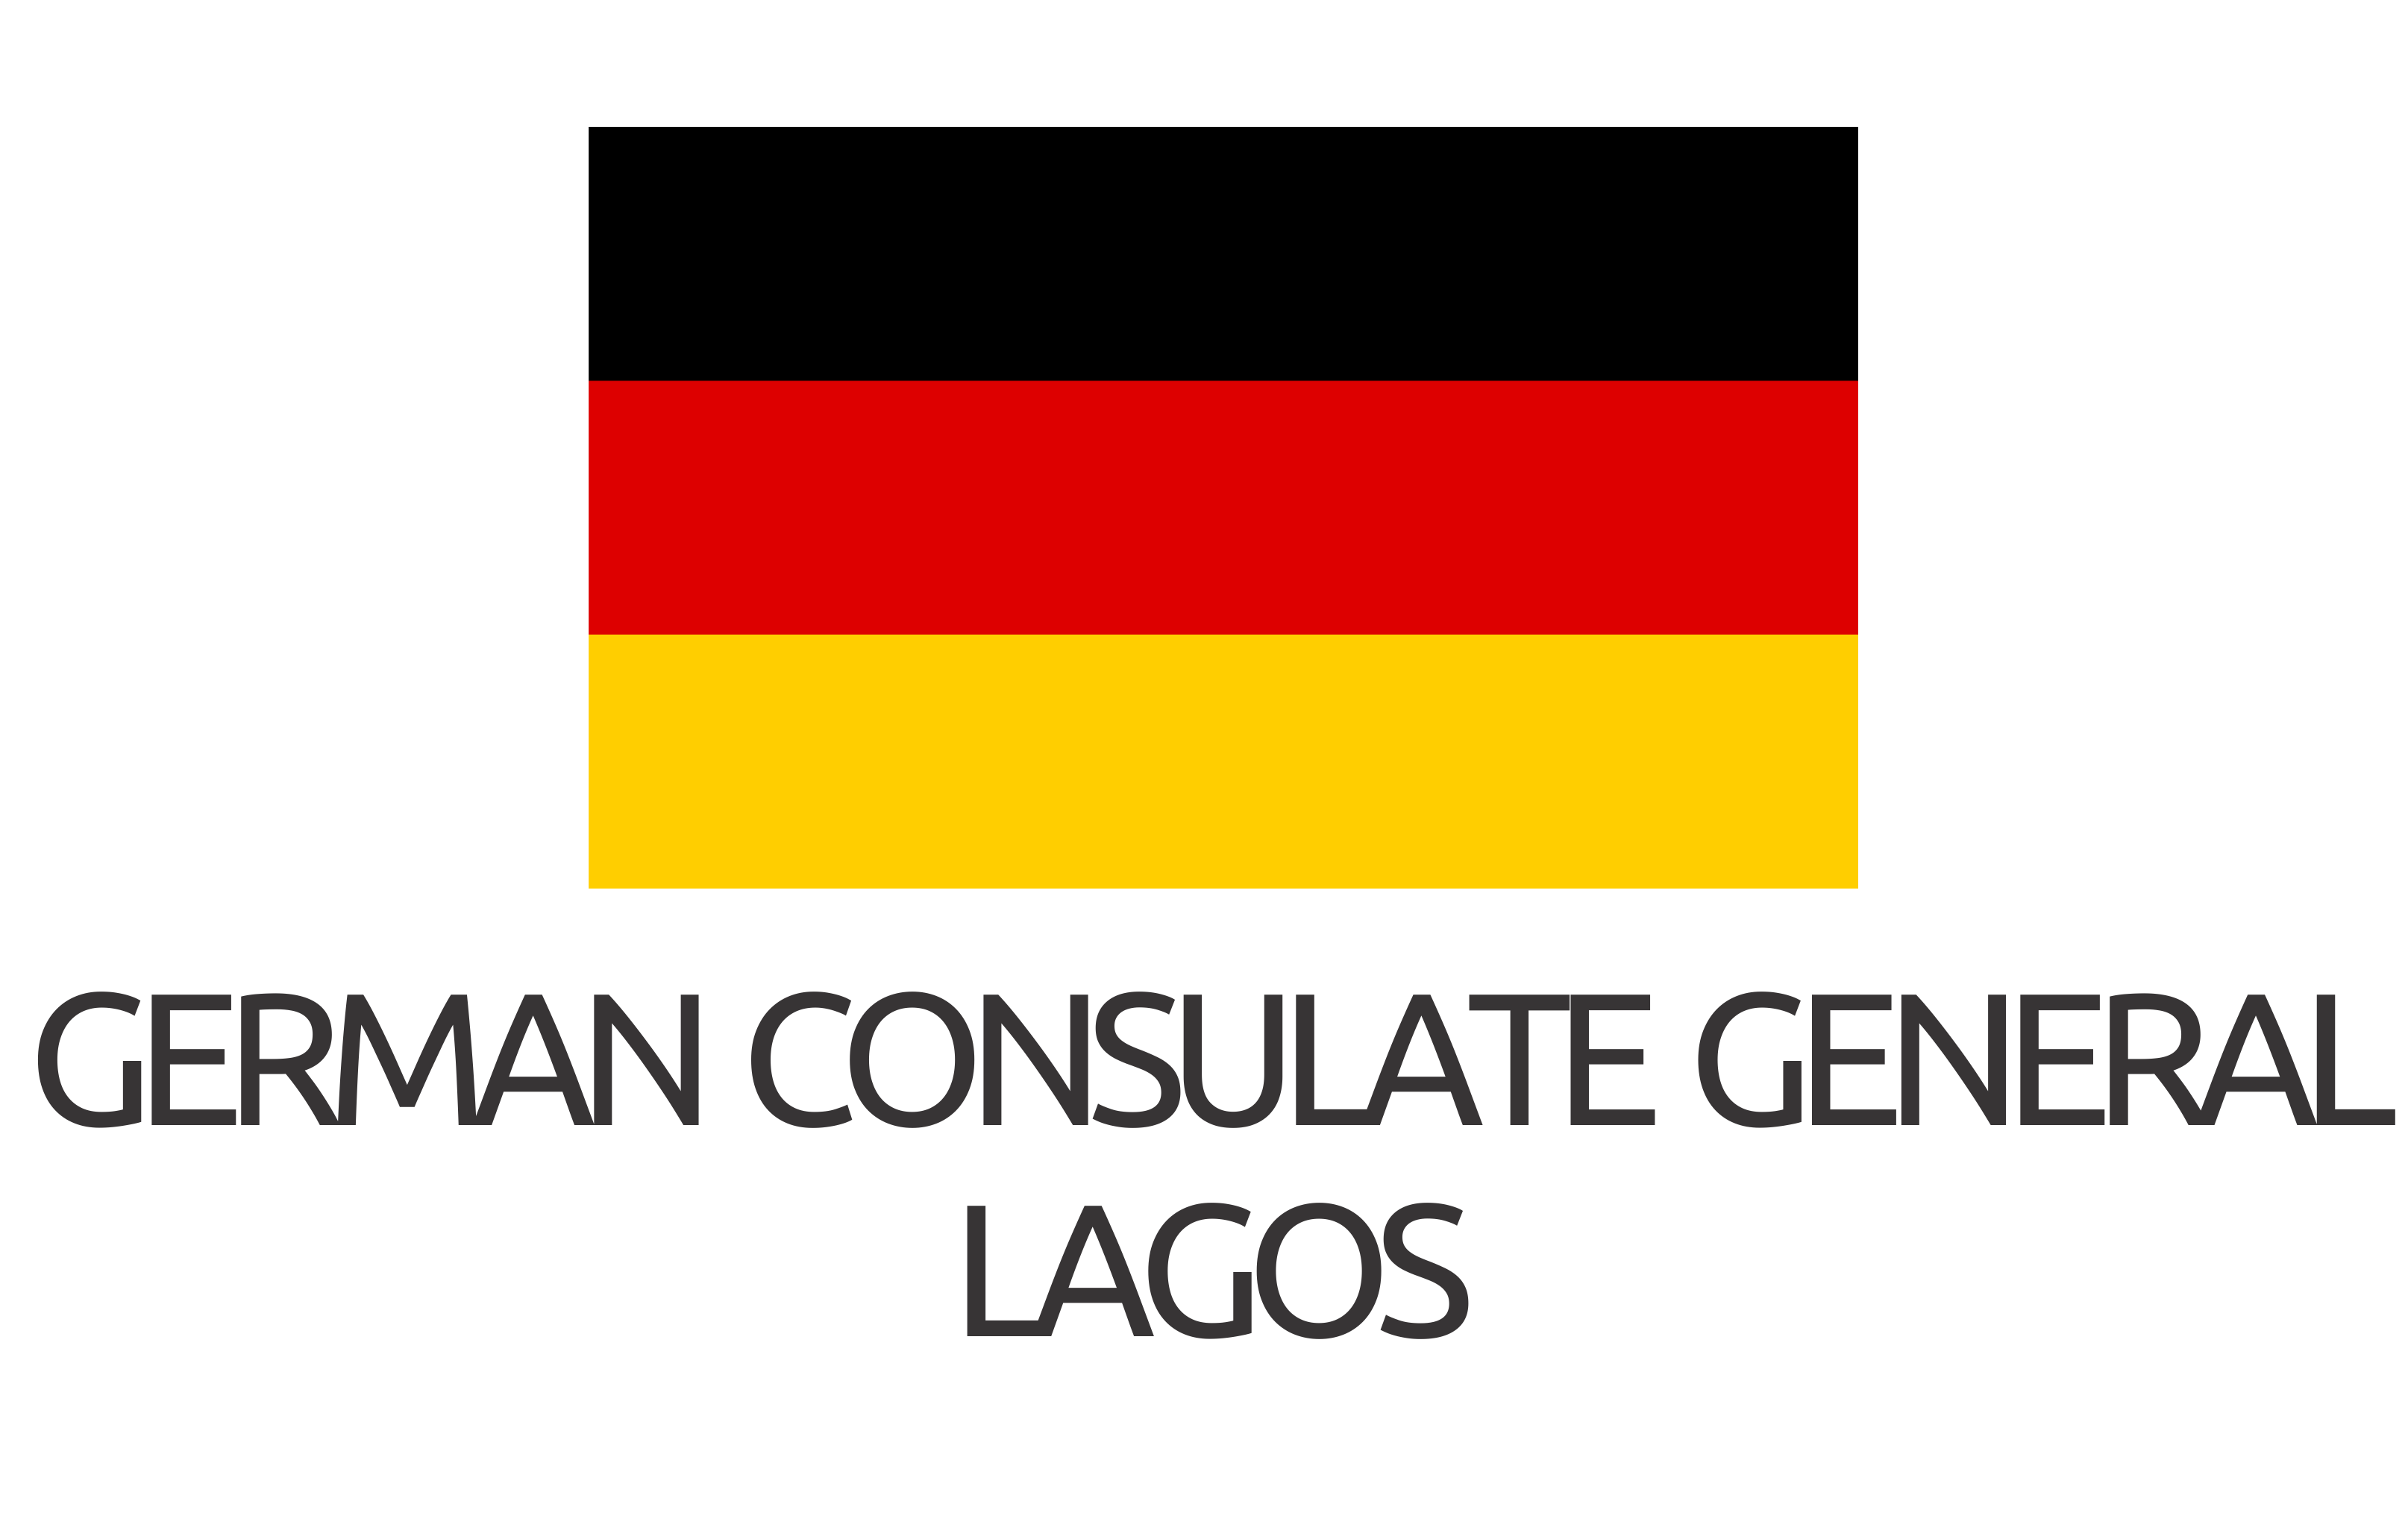 GERMAN CONSULATE GENERAL LAGOS